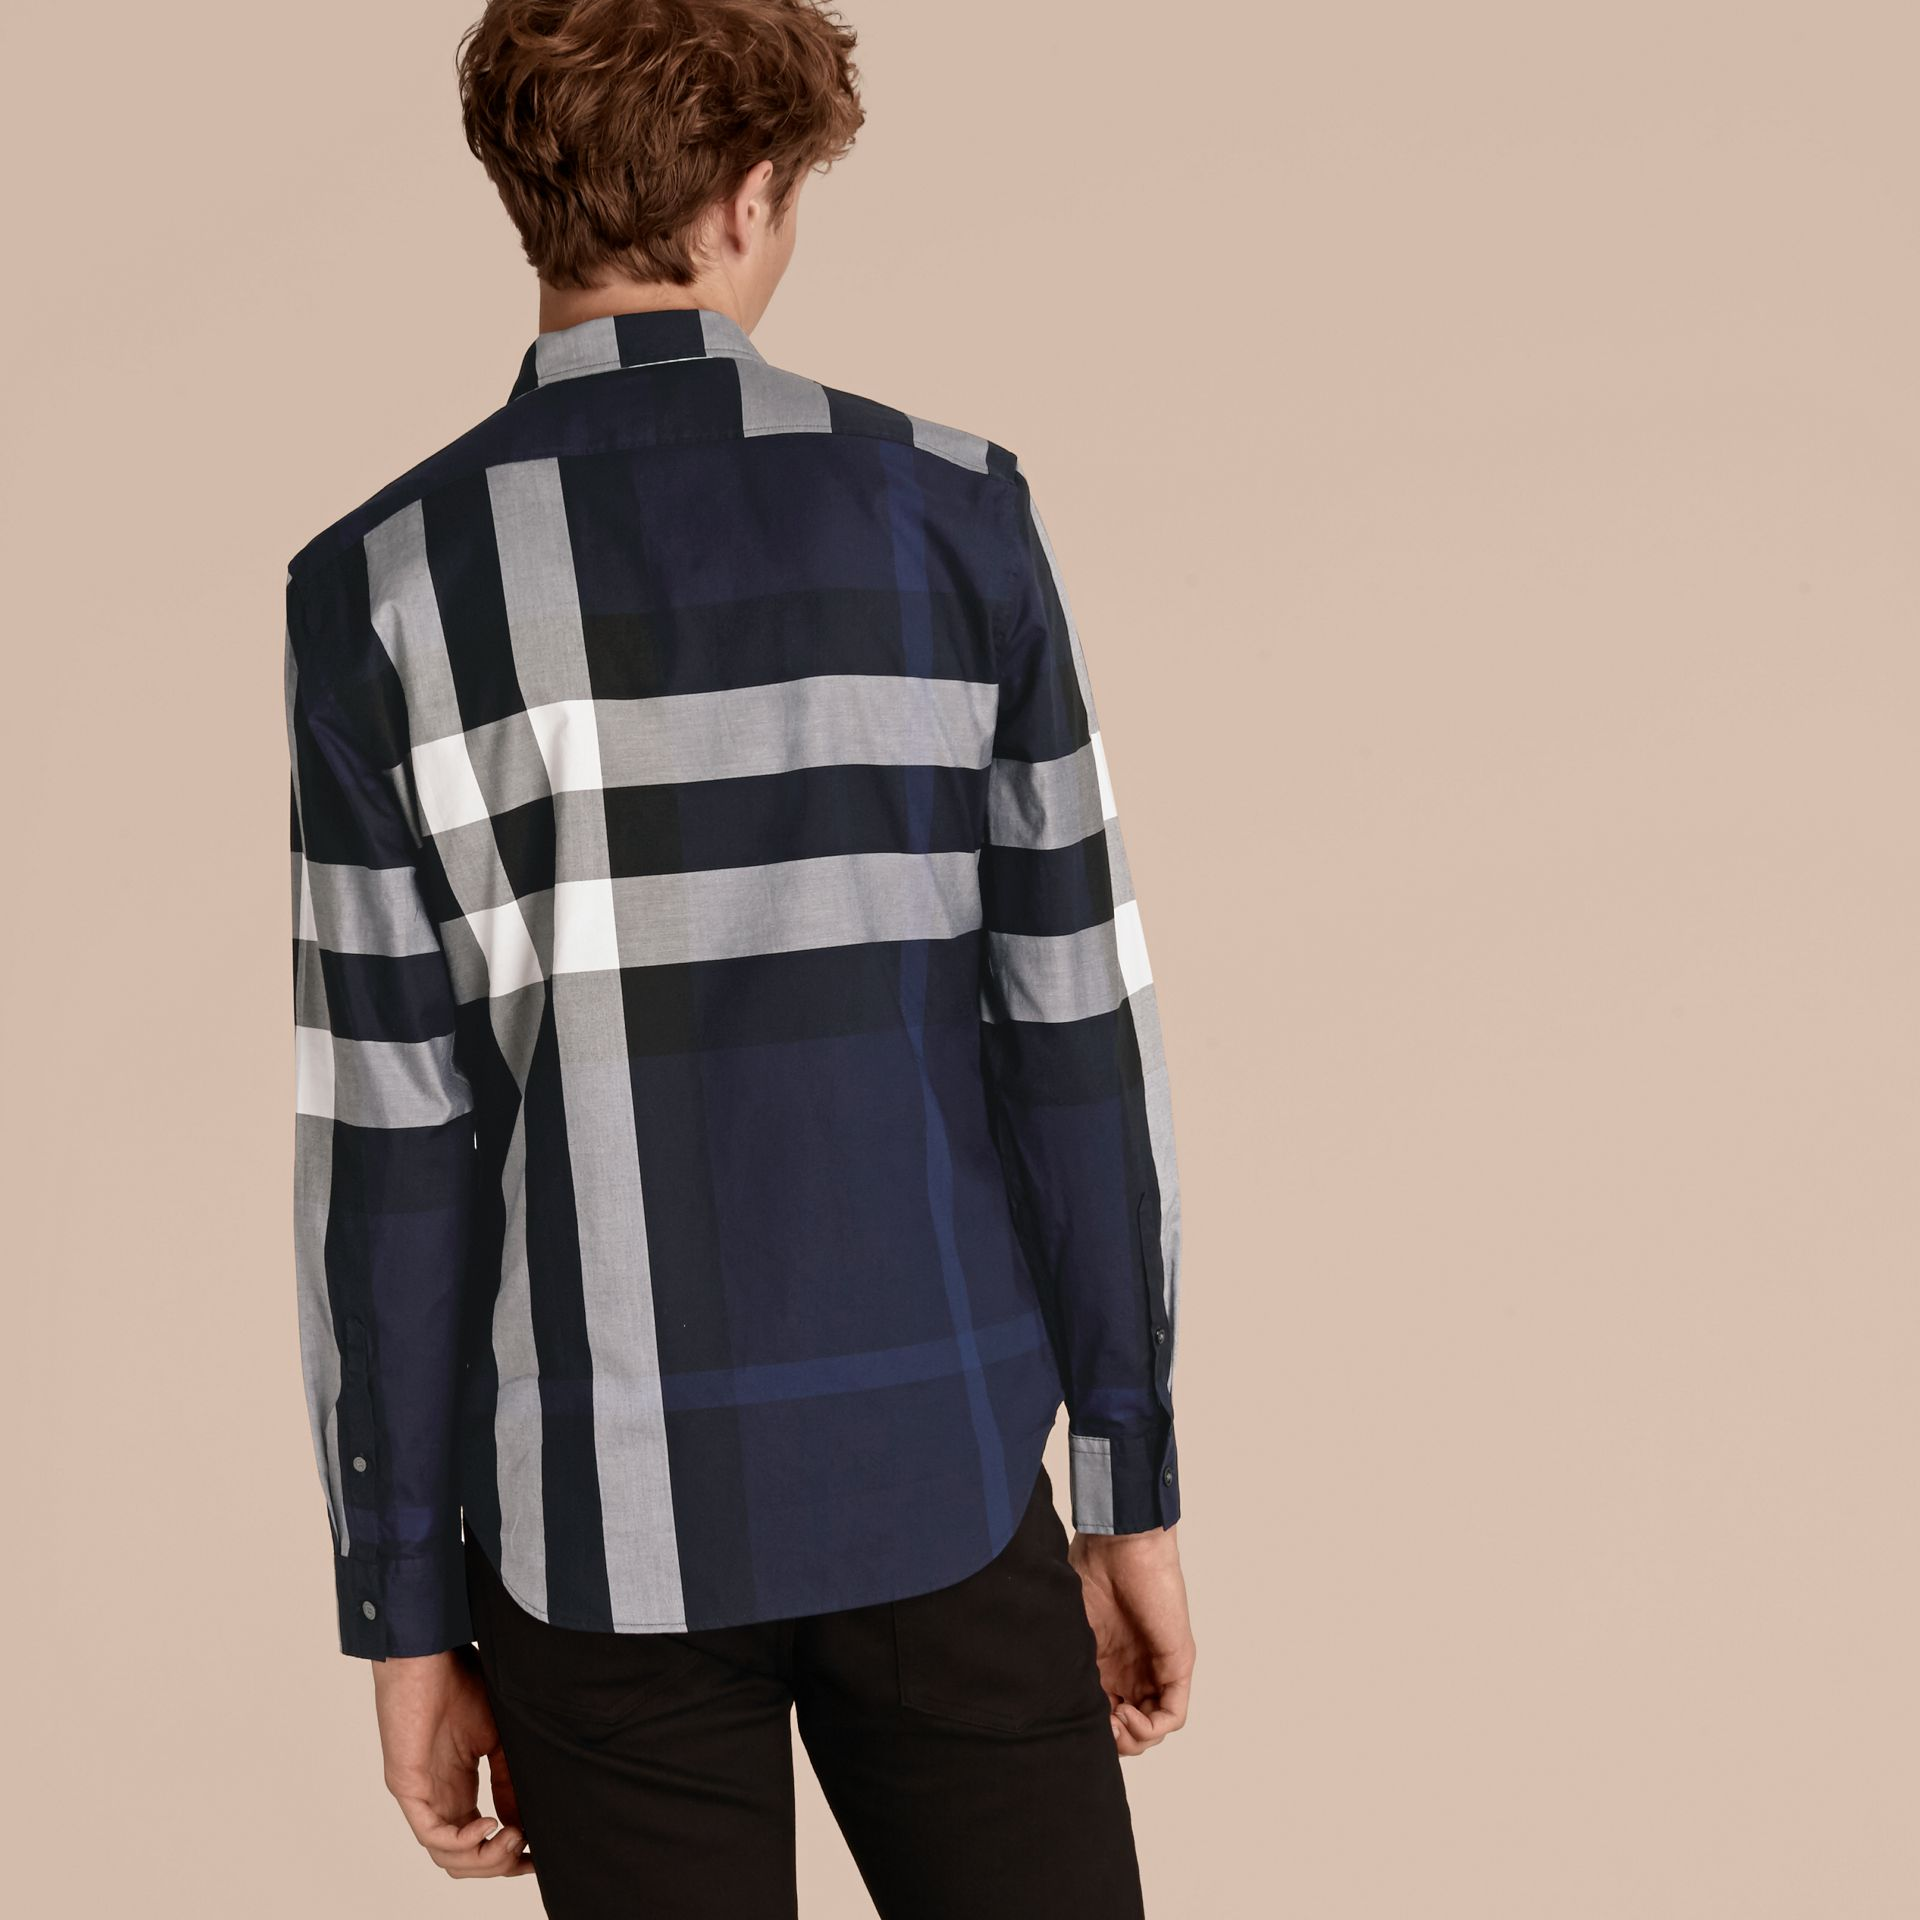 Indigo blue Check Cotton Shirt Indigo Blue - gallery image 3